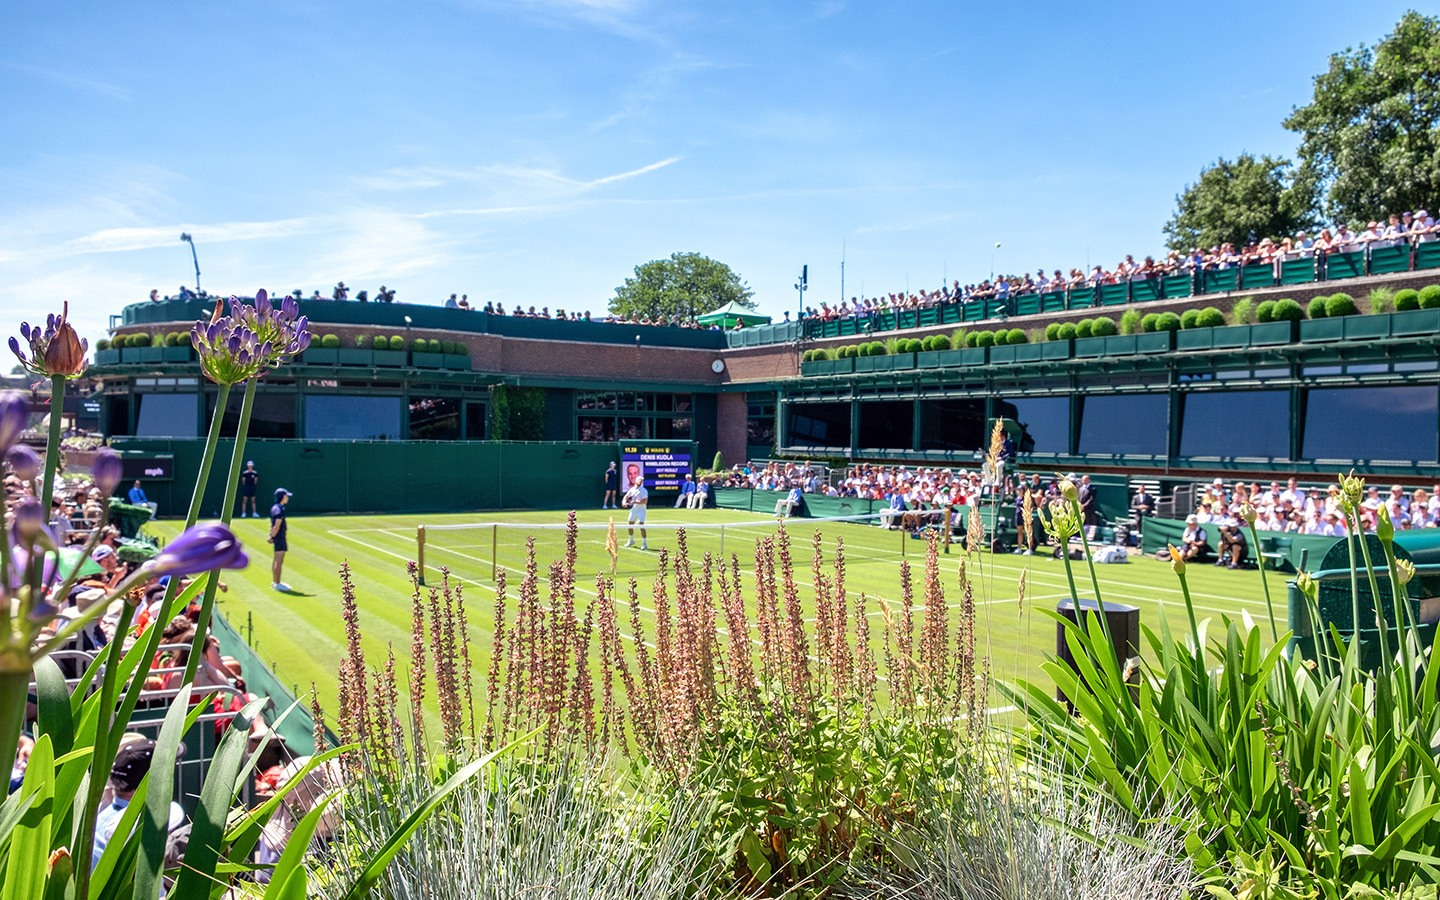 The flower-filled grounds at Wimbledon